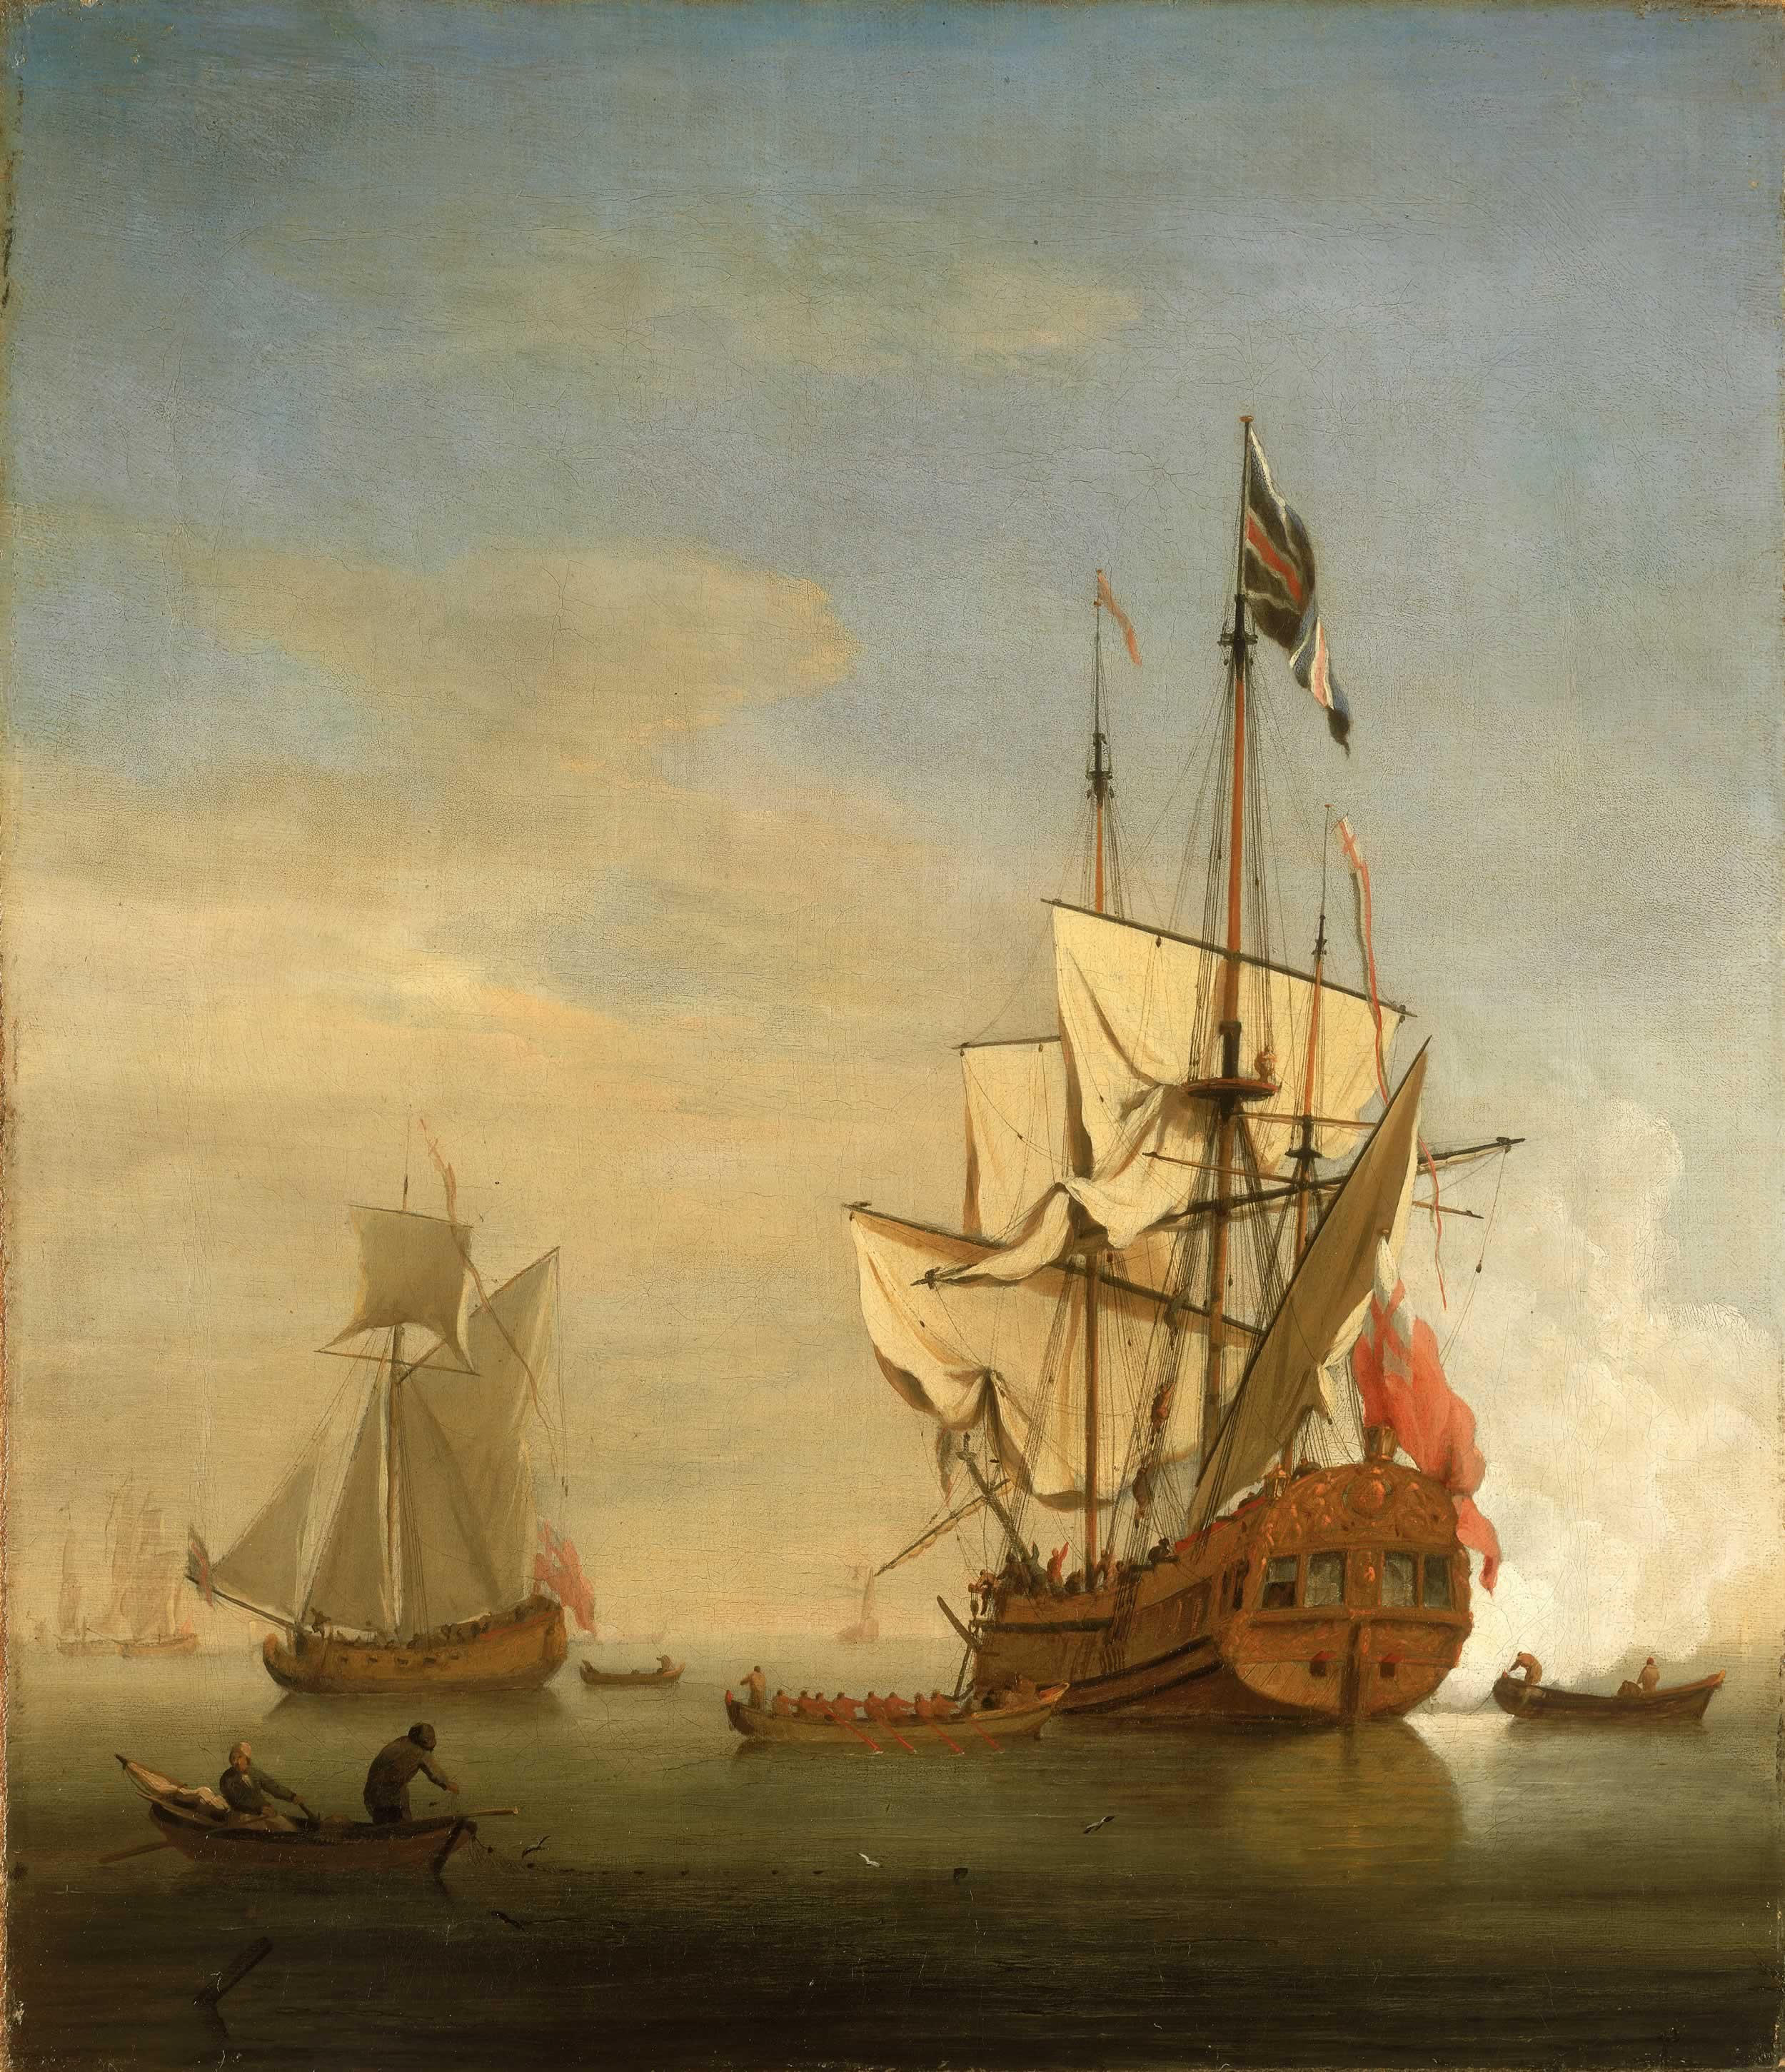 an english sixth rate ship firing a salute as a barge leaves a an english sixth rate ship firing a salute as a barge leaves a royal